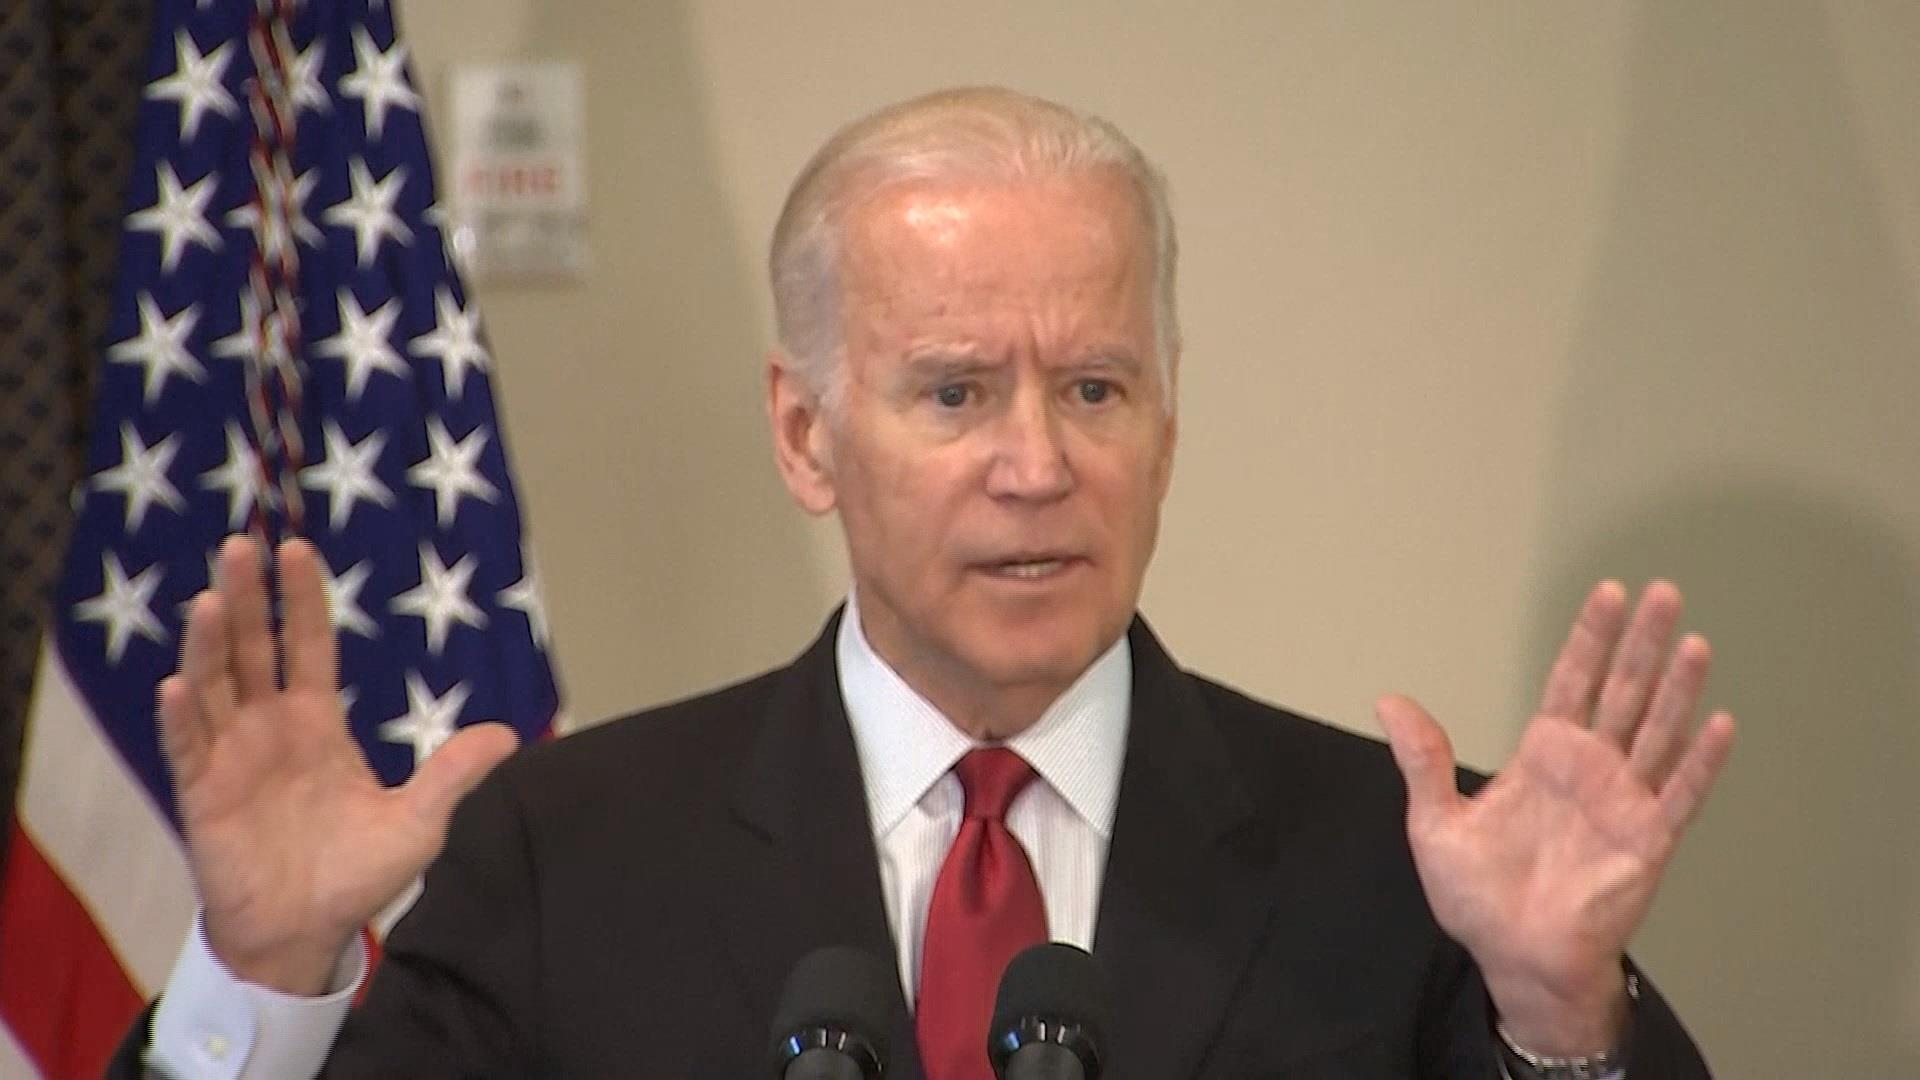 Biden: 'Don't quit' on reducing gun violence